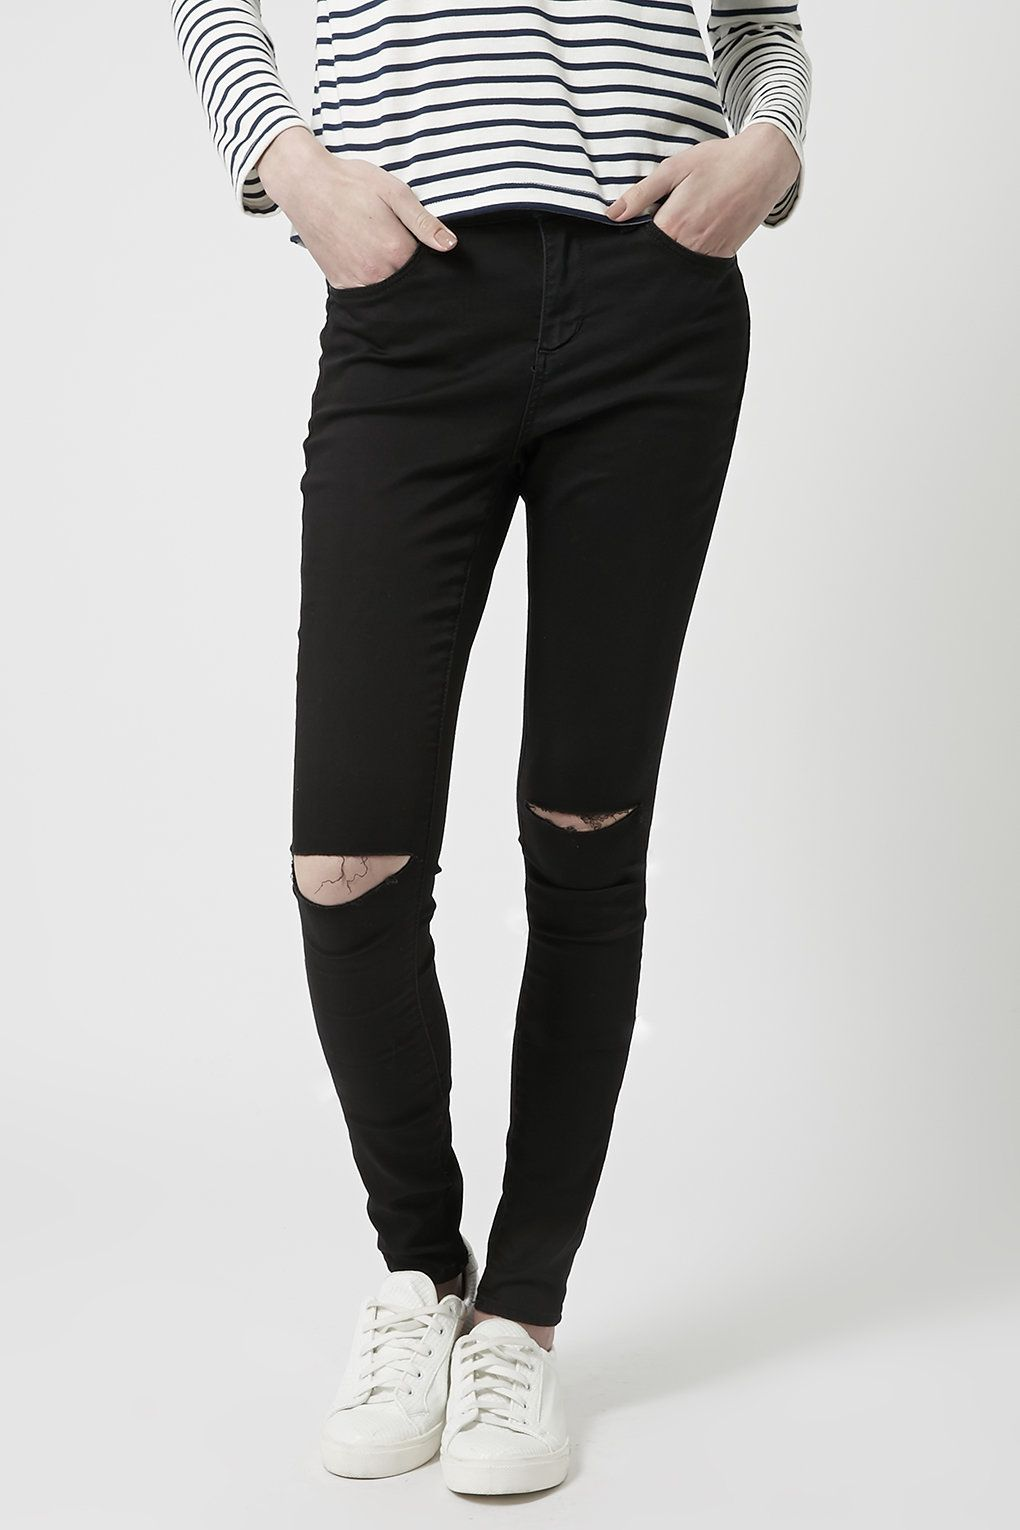 MOTO Black Ripped Leigh Jeans